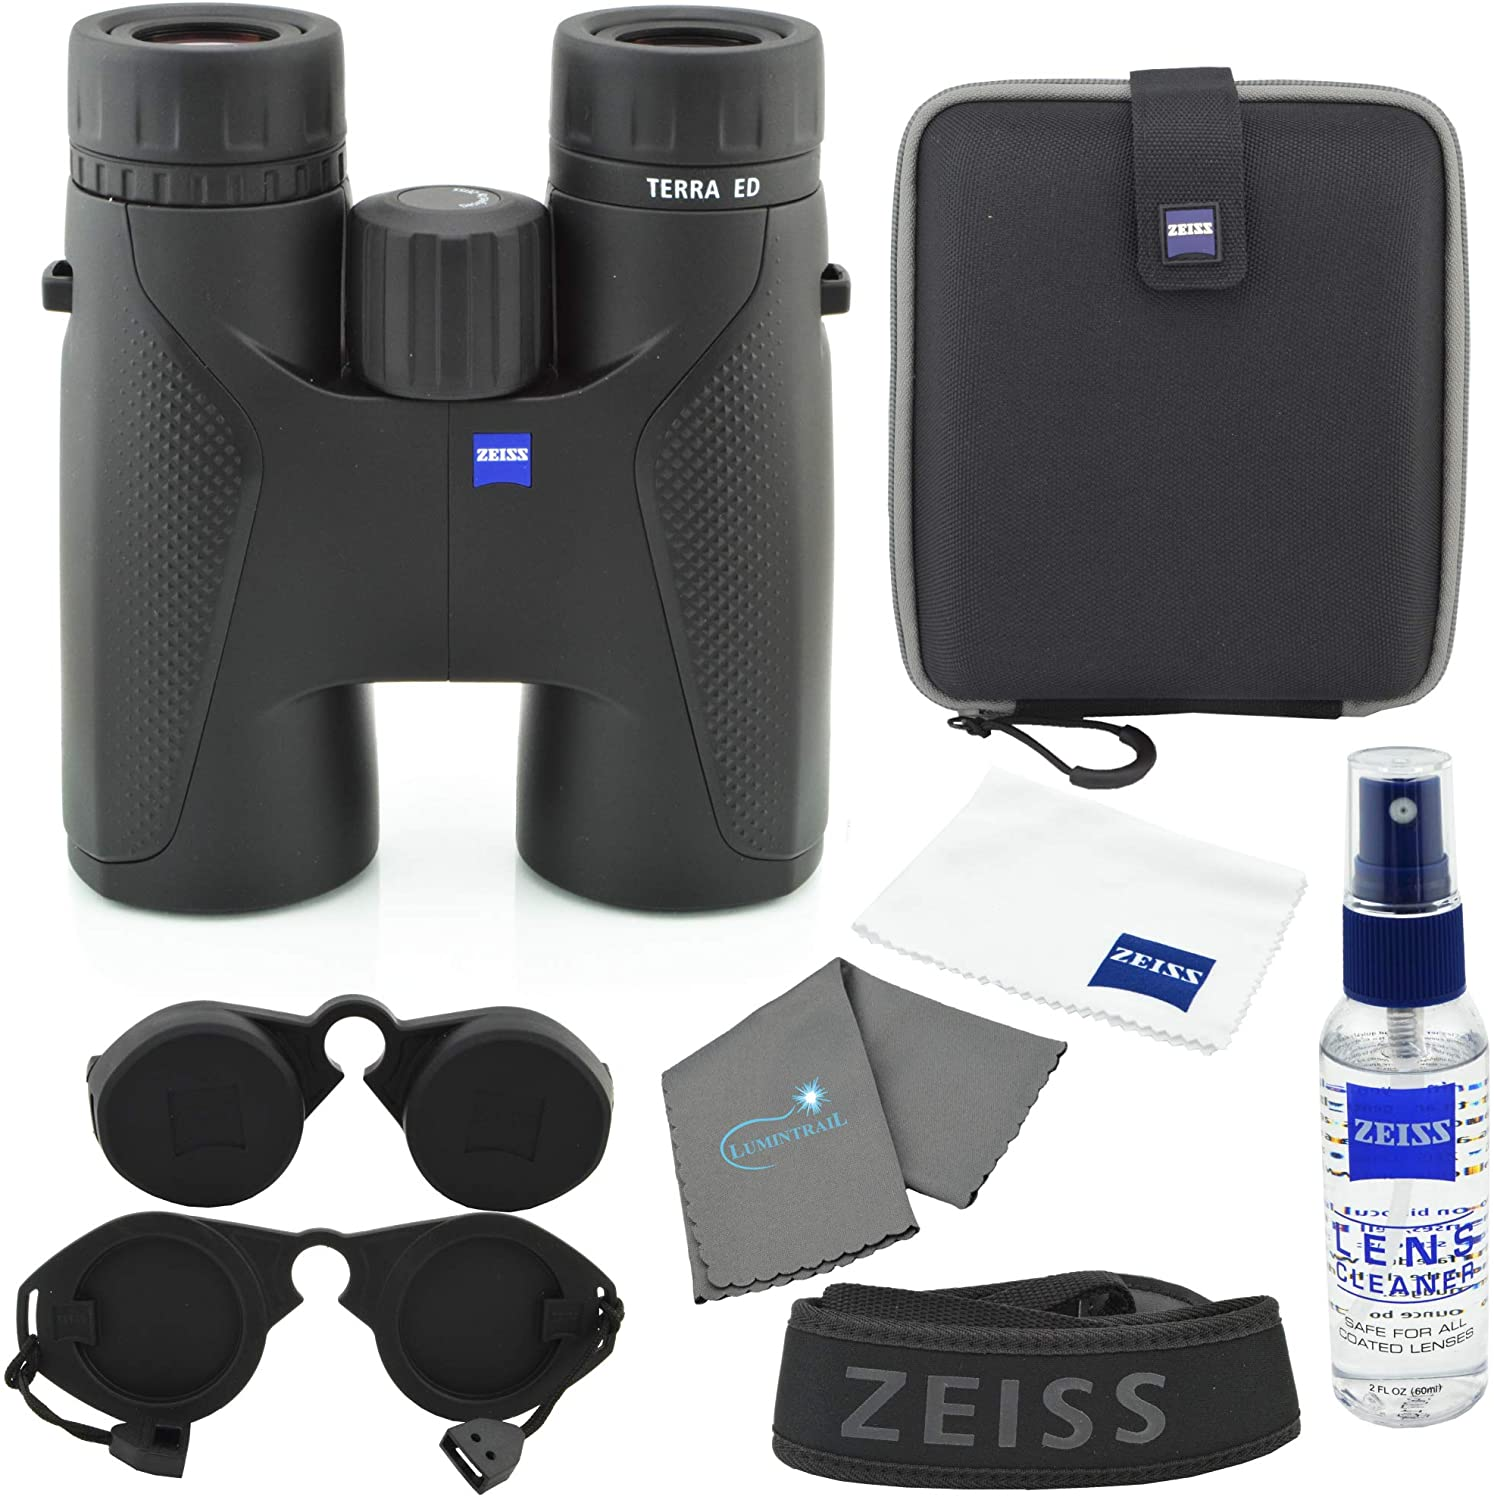 Zeiss 8x42 Terra ED Binocular Black Excellence Lens Bundle with Care Max 46% OFF